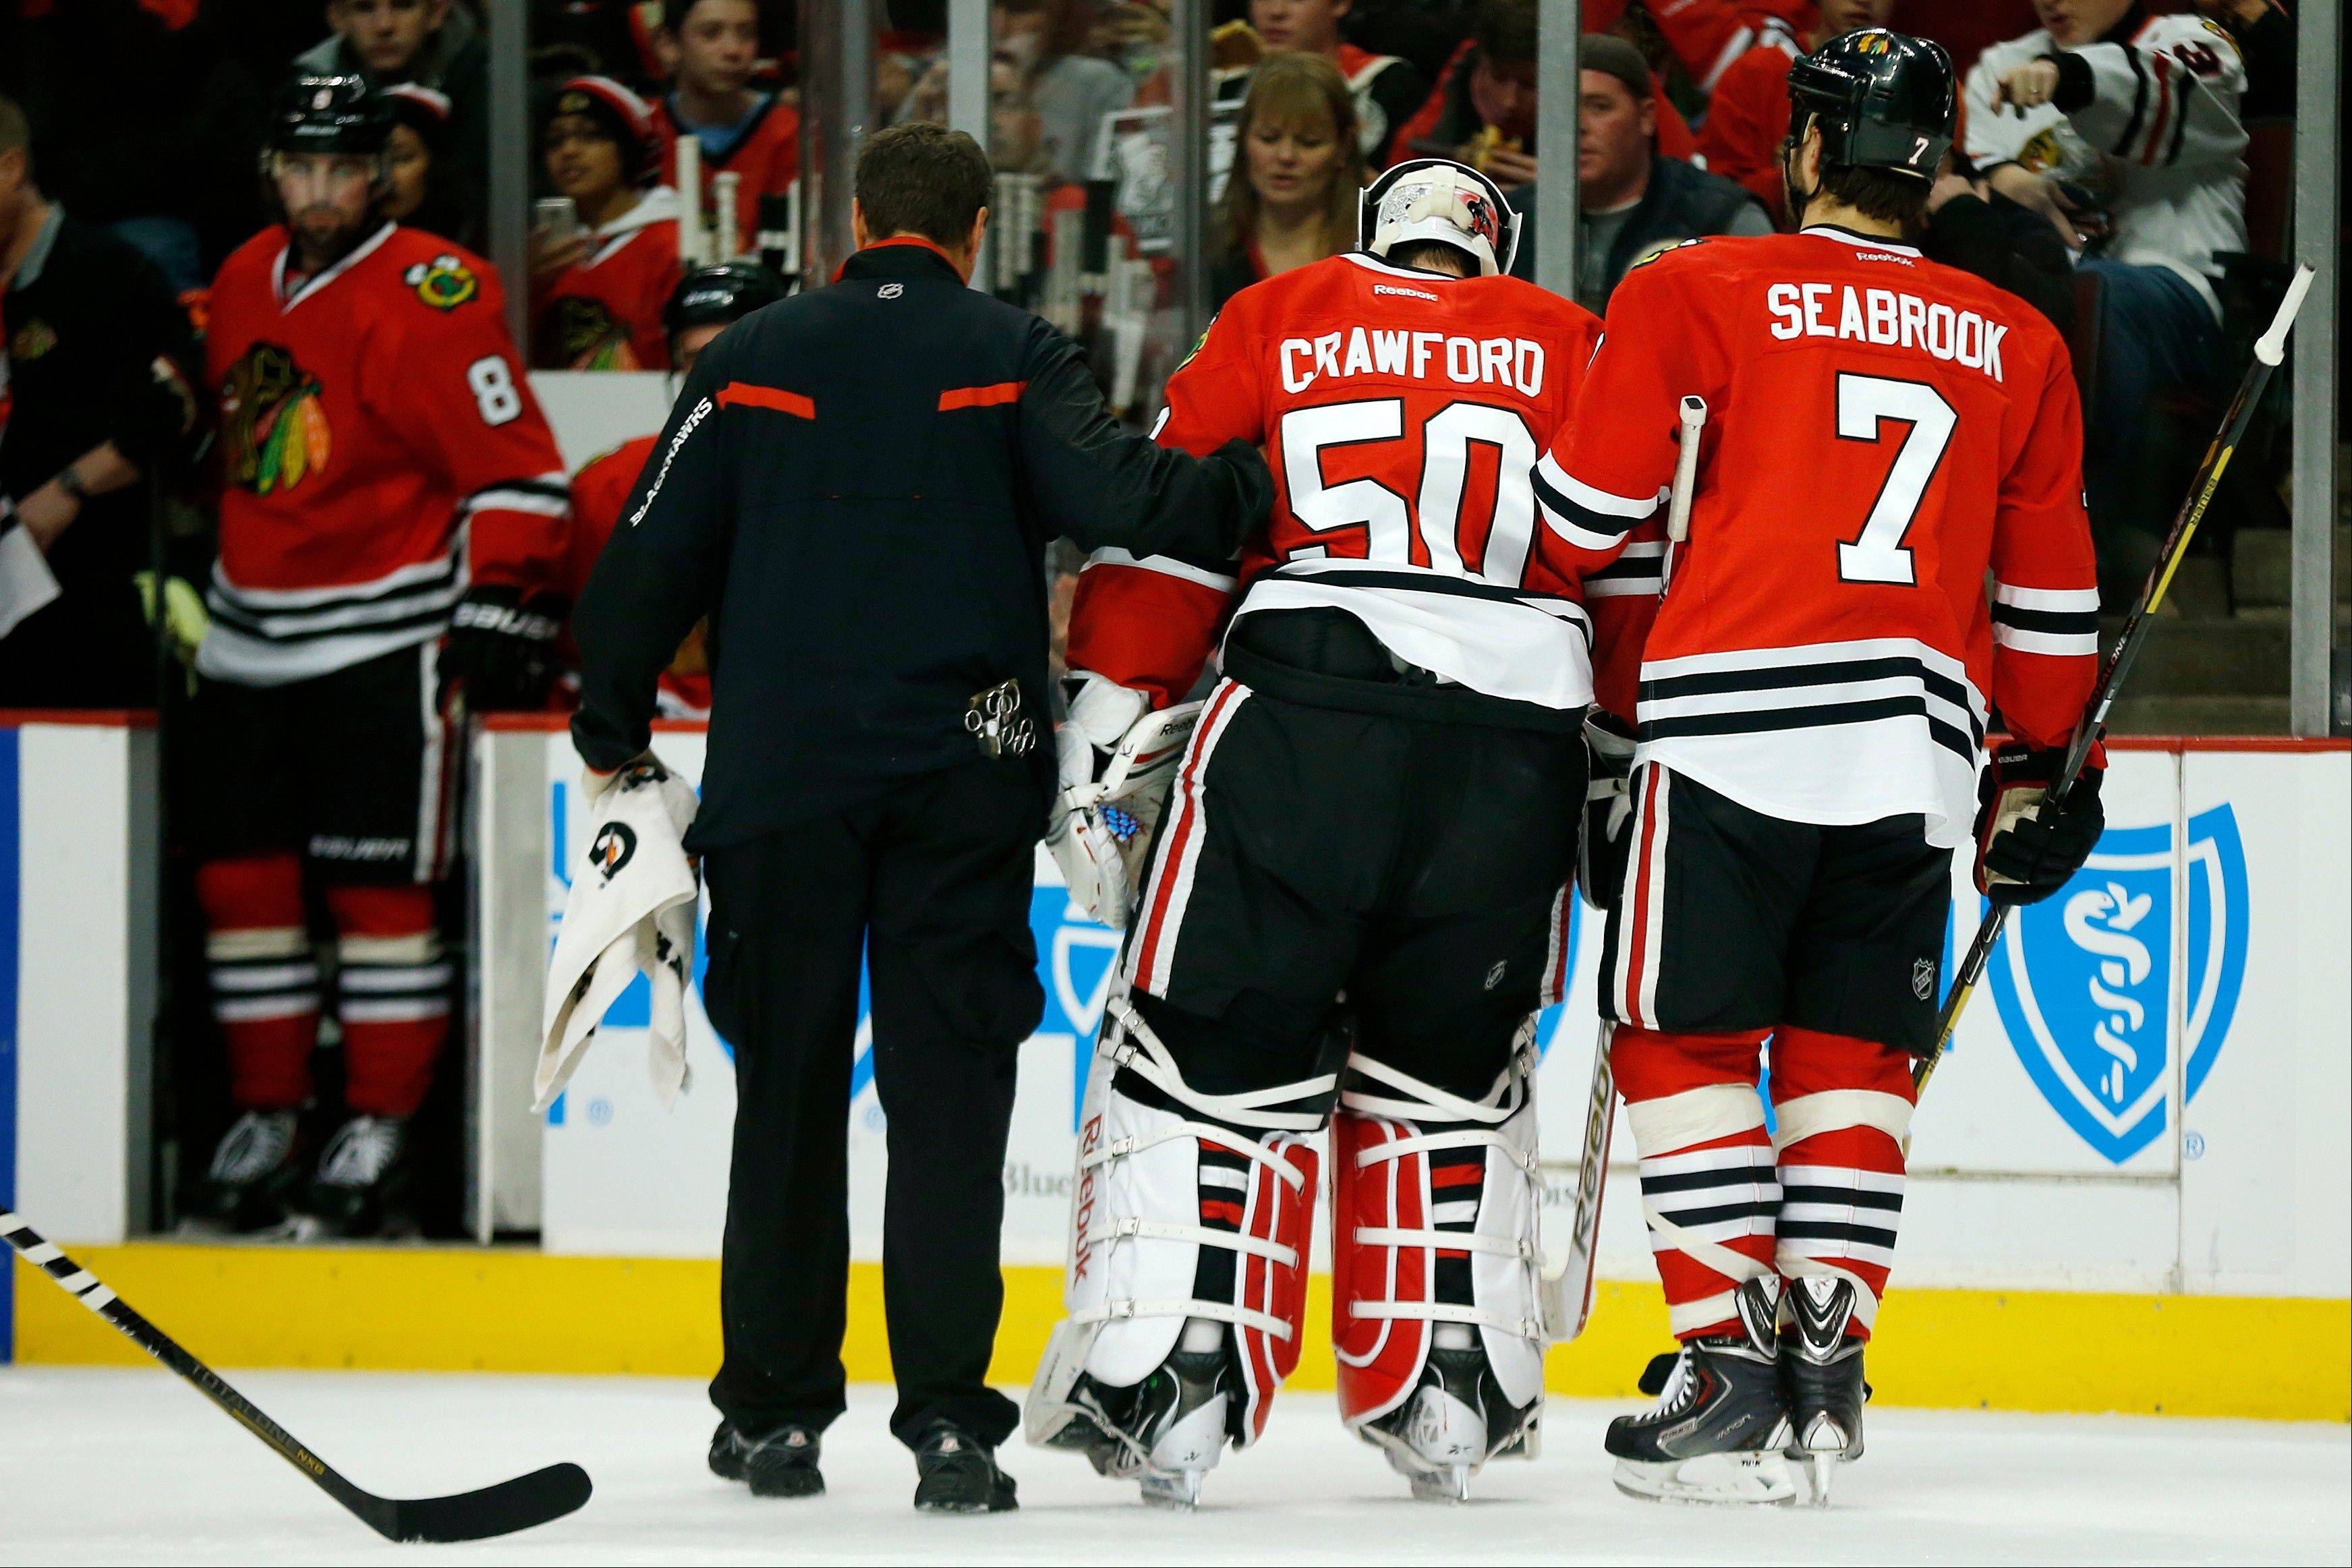 Blackhawks goalie Corey Crawford is helped off the ice after suffering an injury during the first period Sunday night.